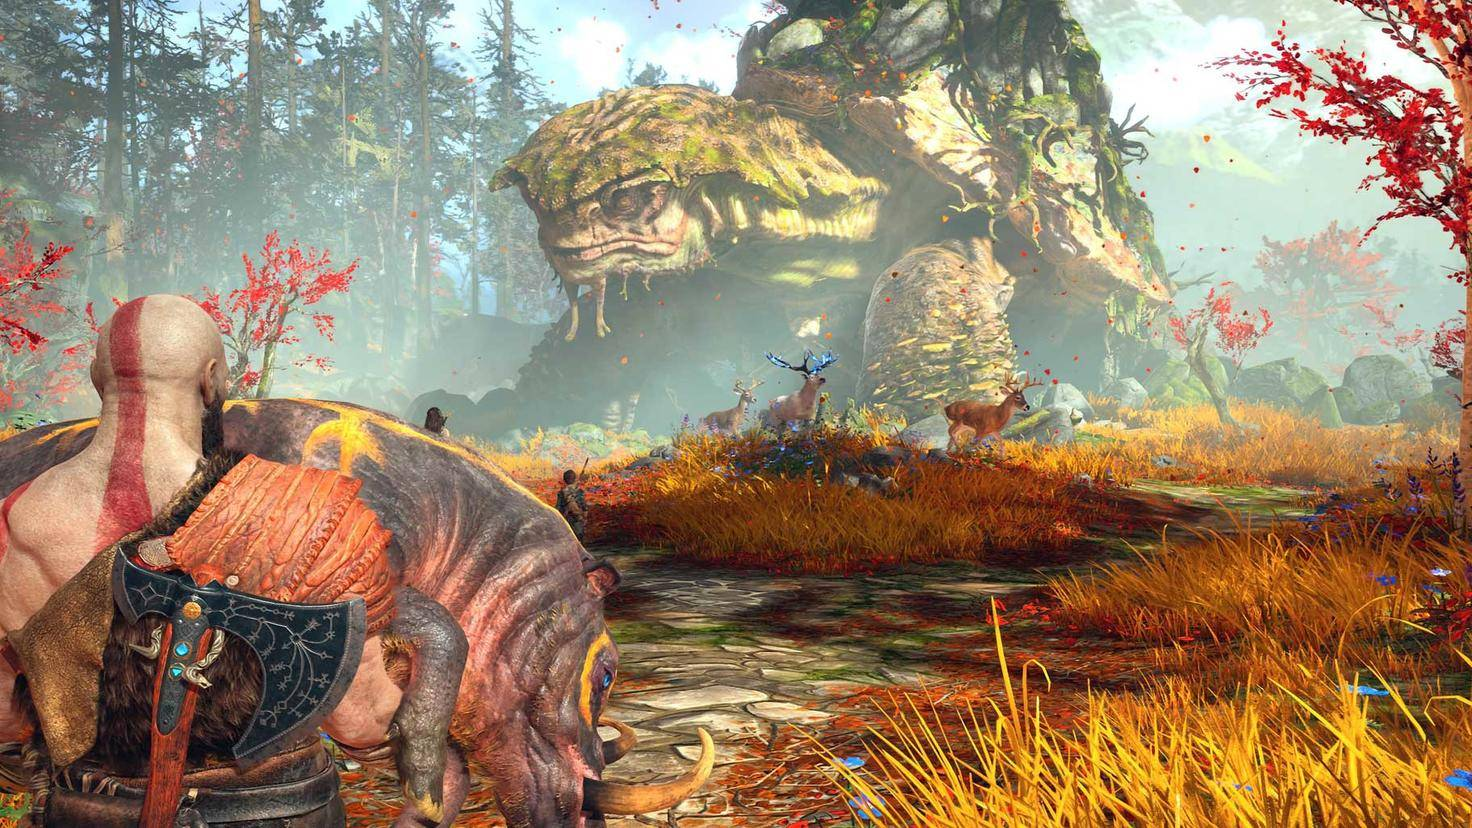 god-of-war-screenshot-kratos-tiere